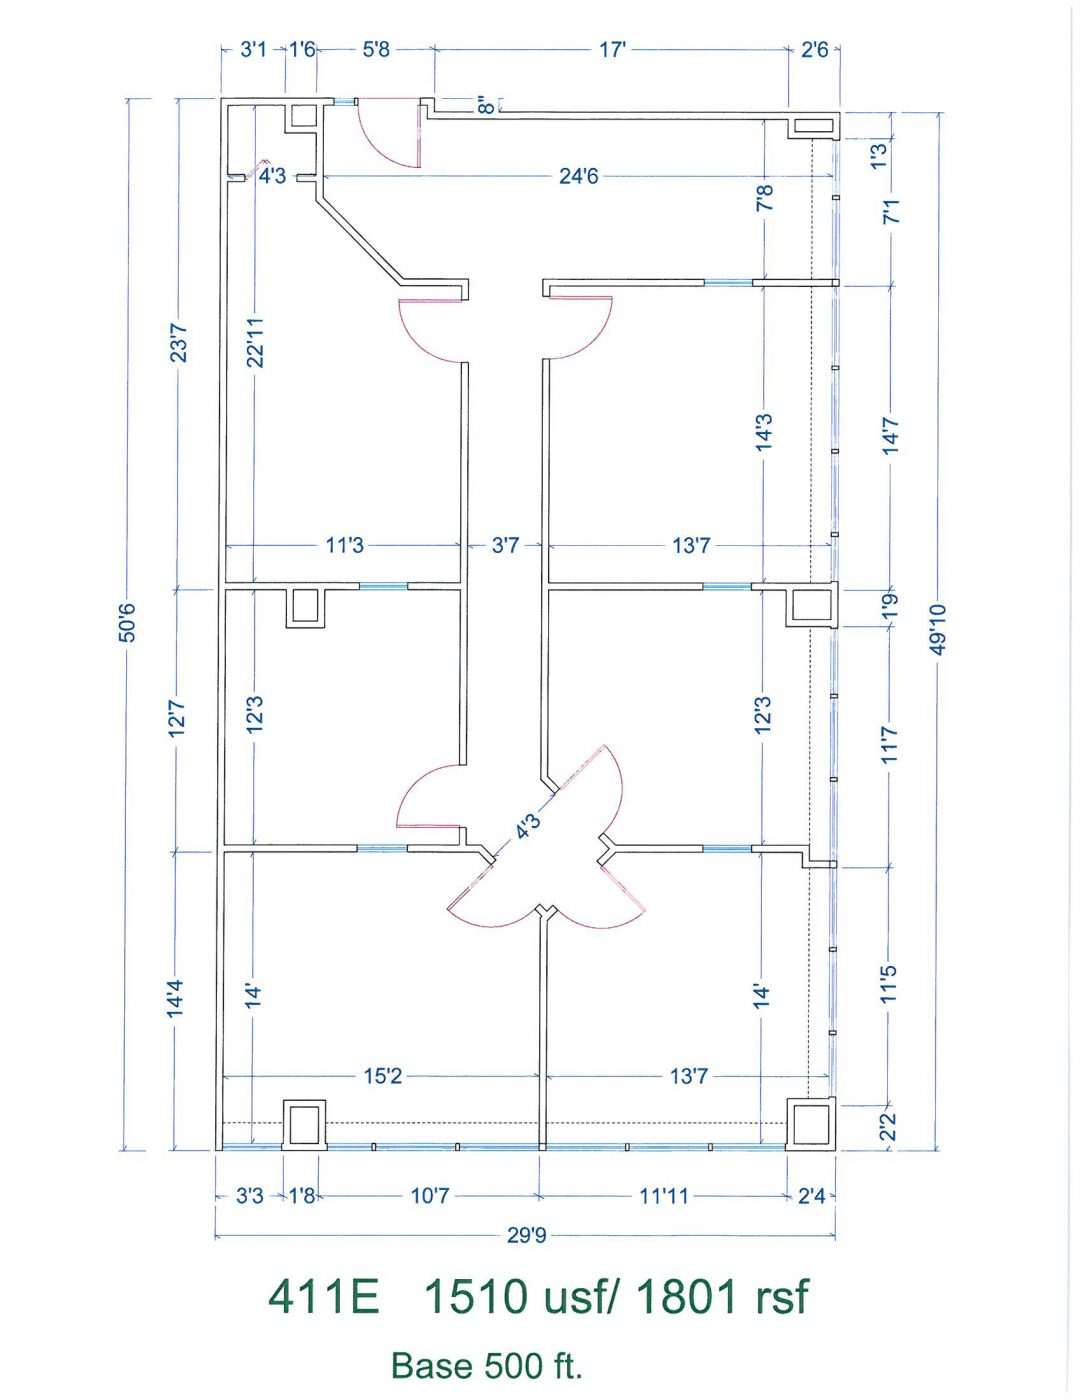 Floor Plan for unit 411E at 15565 Northland Dr, 15565 Northland Dr - East, 15565 Northland Dr Southfield, MI 48075